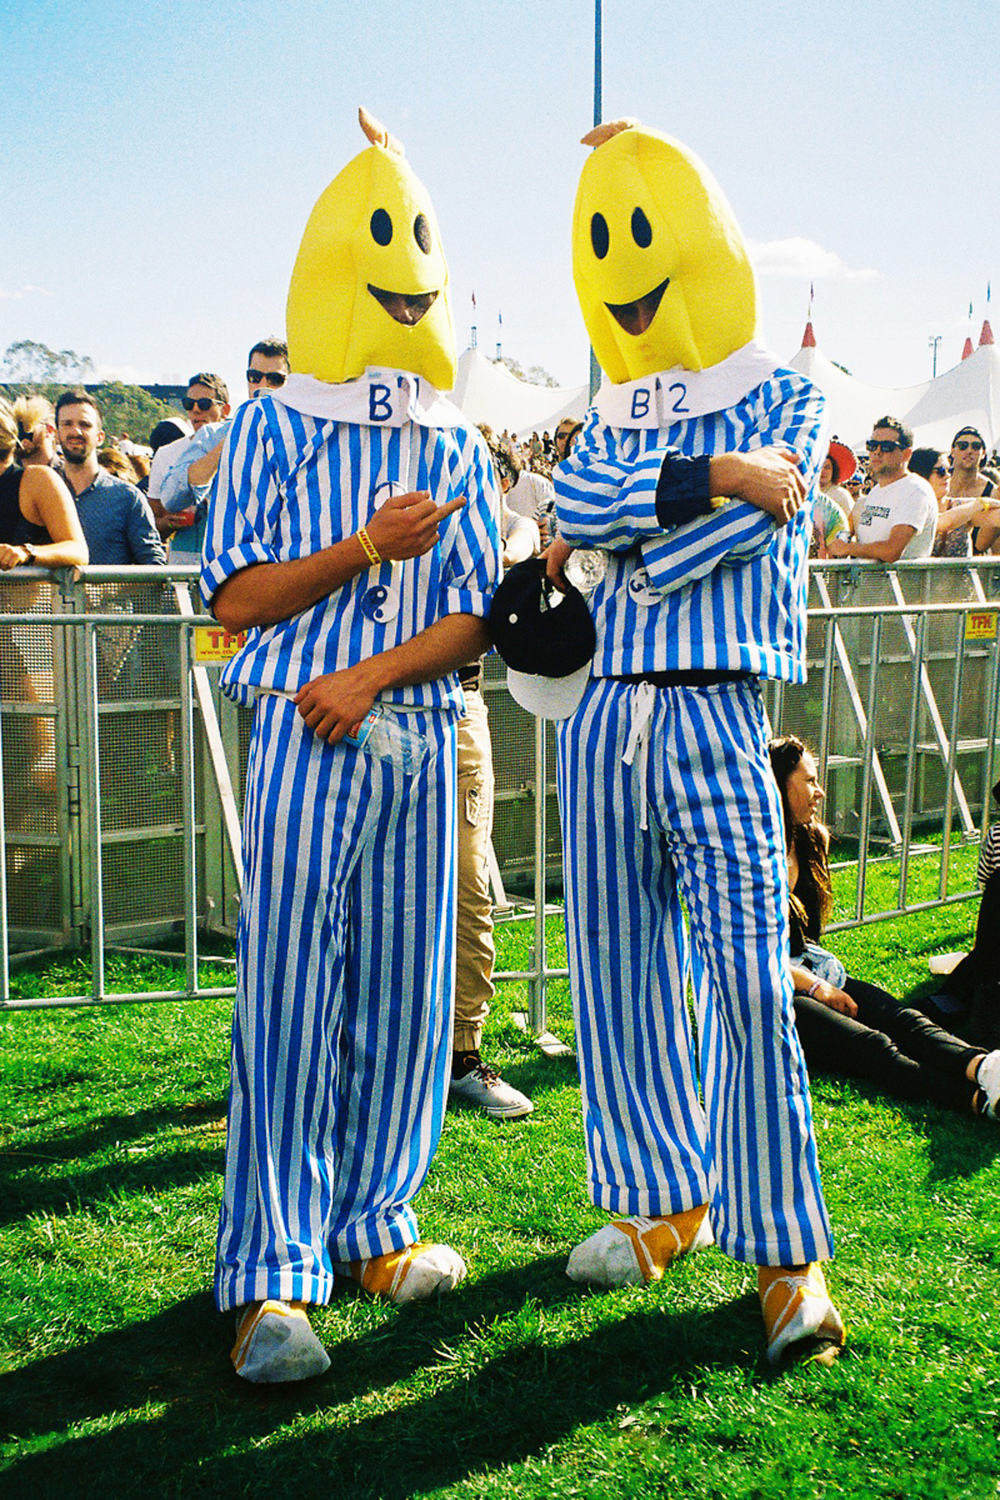 VOENA_GROOVIN_THE_MOO_CANBERRA_FILM_2015_35MM_PHOTOS-20.jpg